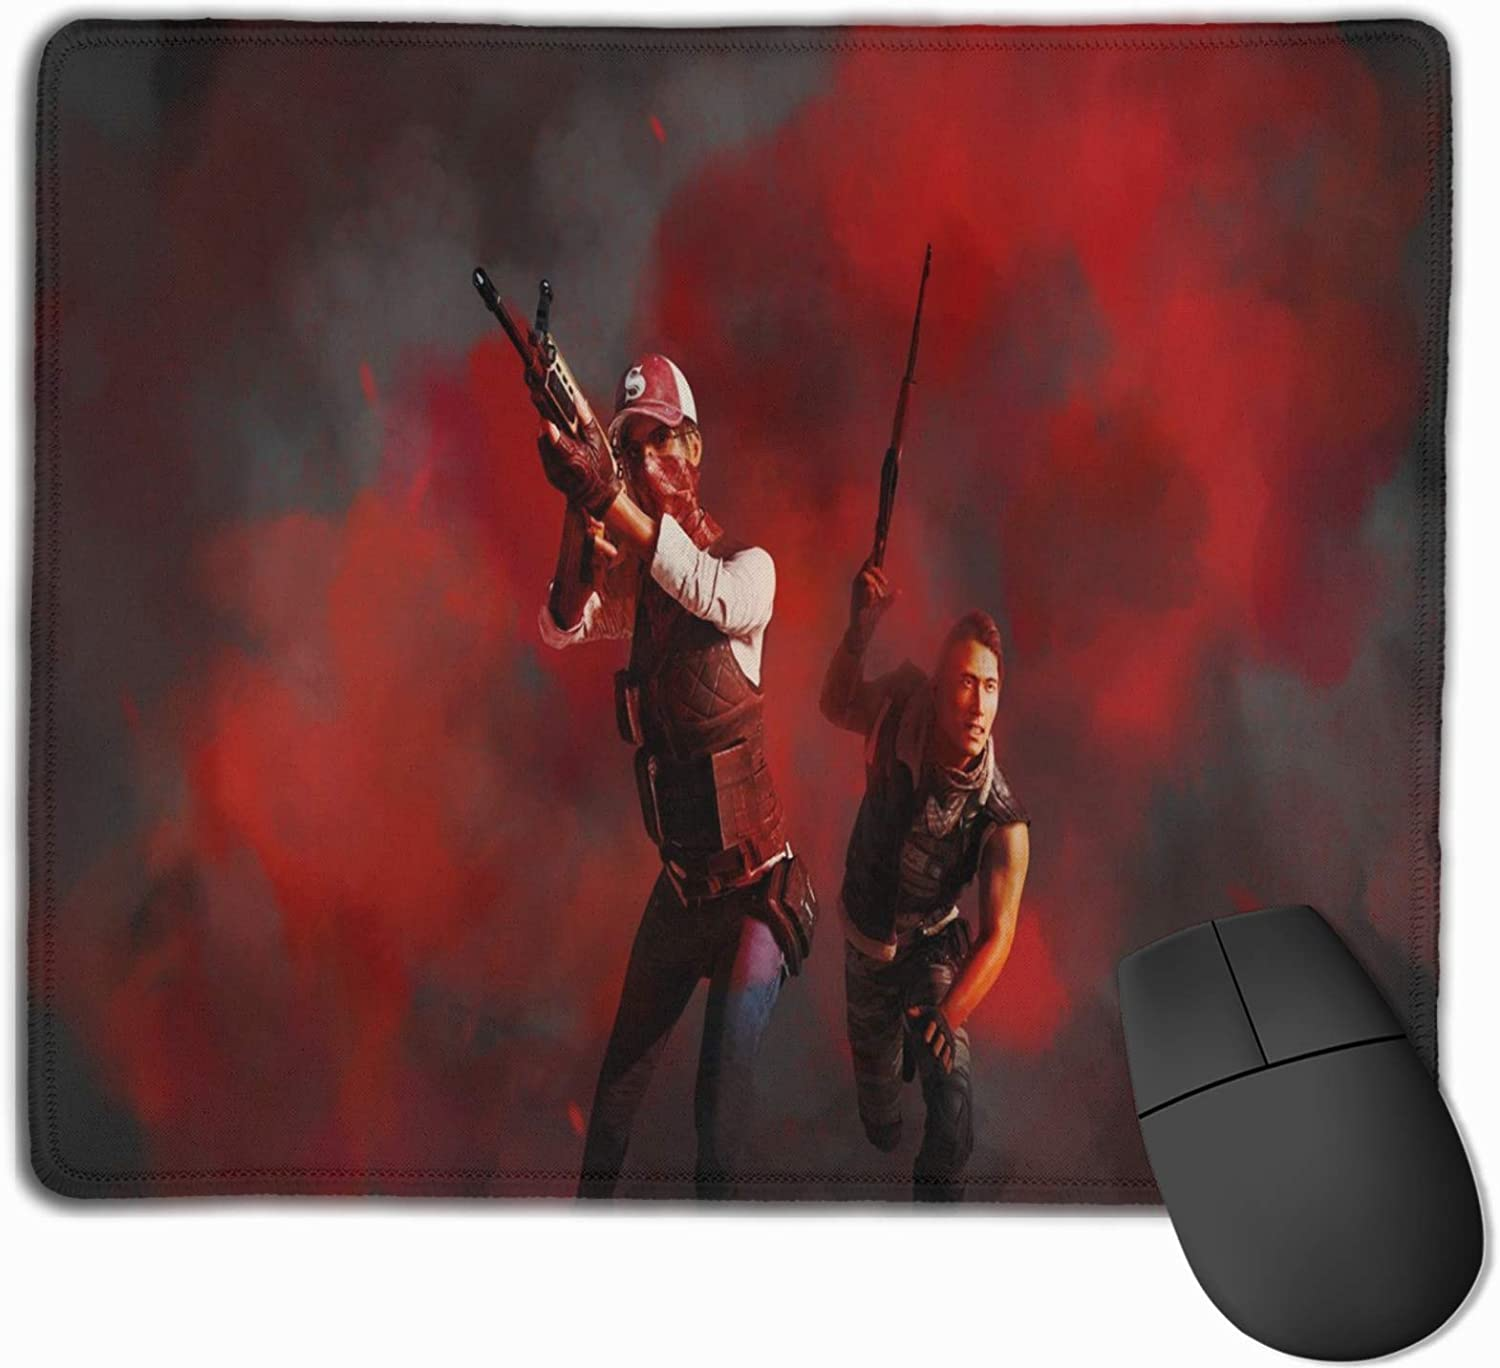 Pubg-32 Mouse Pad with Stitched Edge Non-Slip Rubber Base Mousepad for Computer, Laptop, Home, Office & Travel